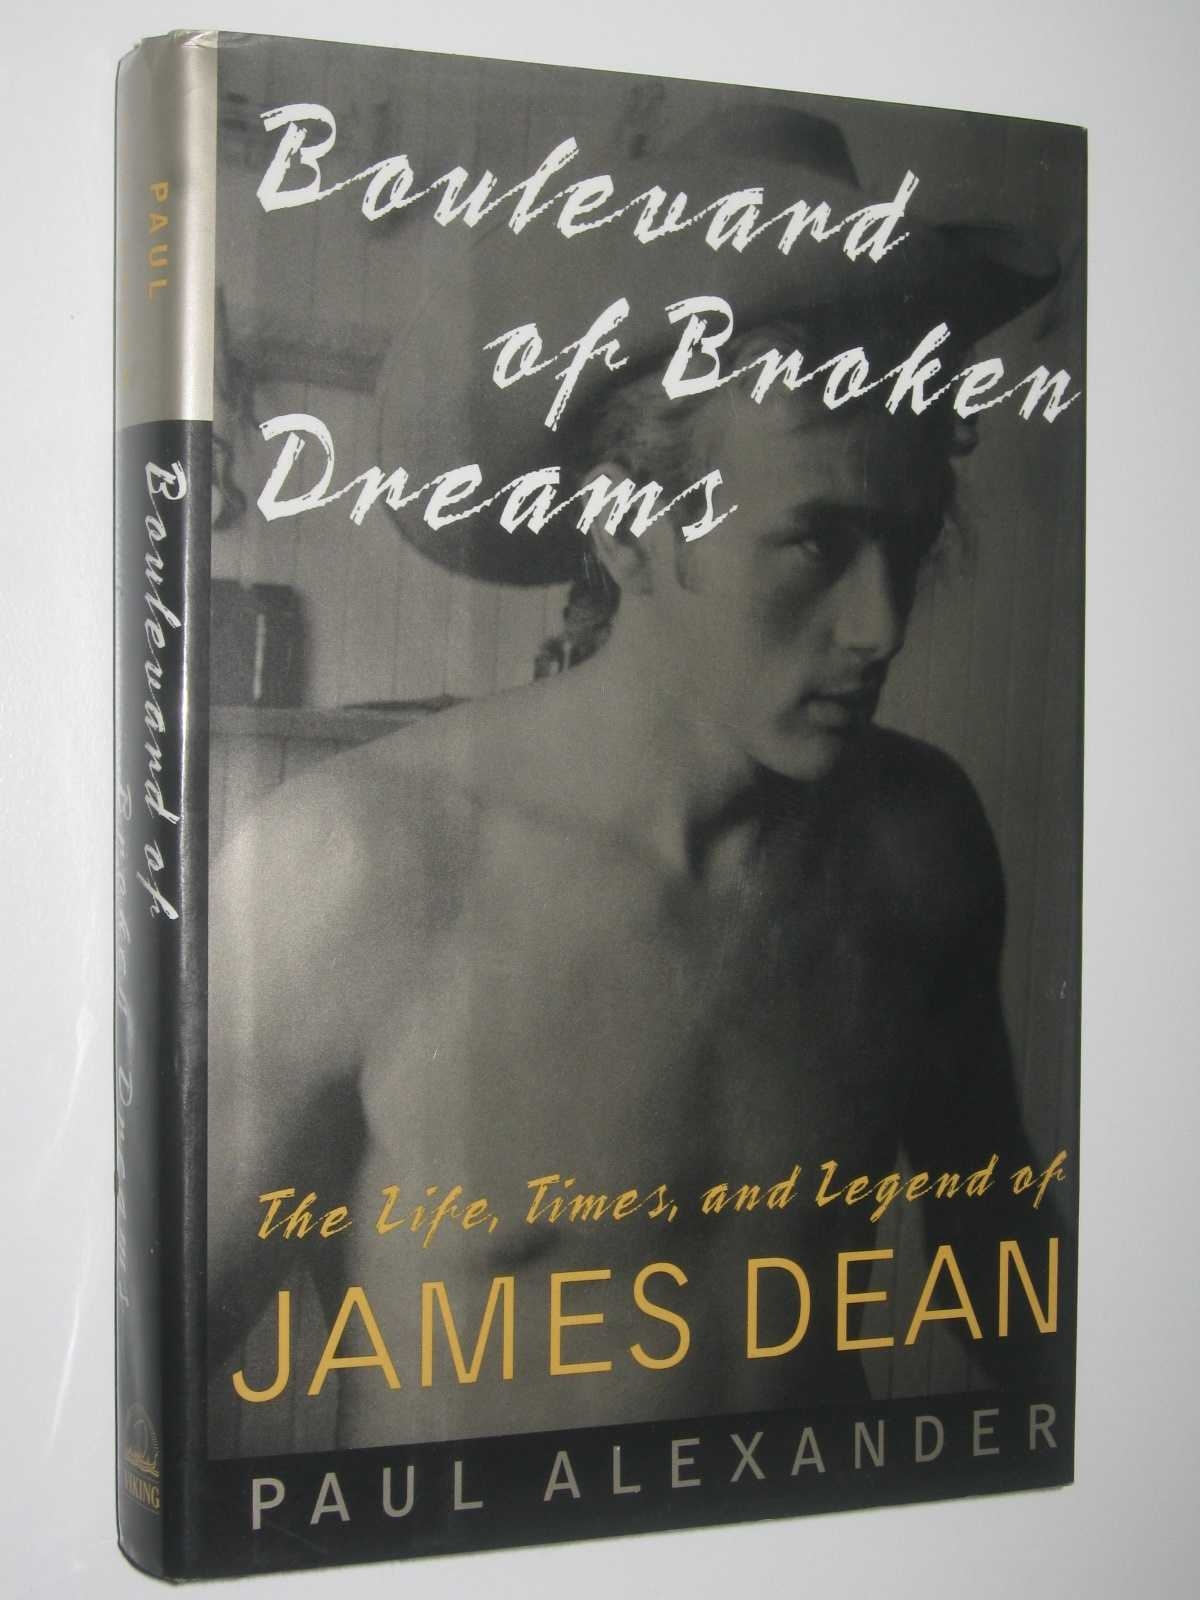 Image for Boulevard of Broken Dreams : The Life, Times, and Legend of James Dean